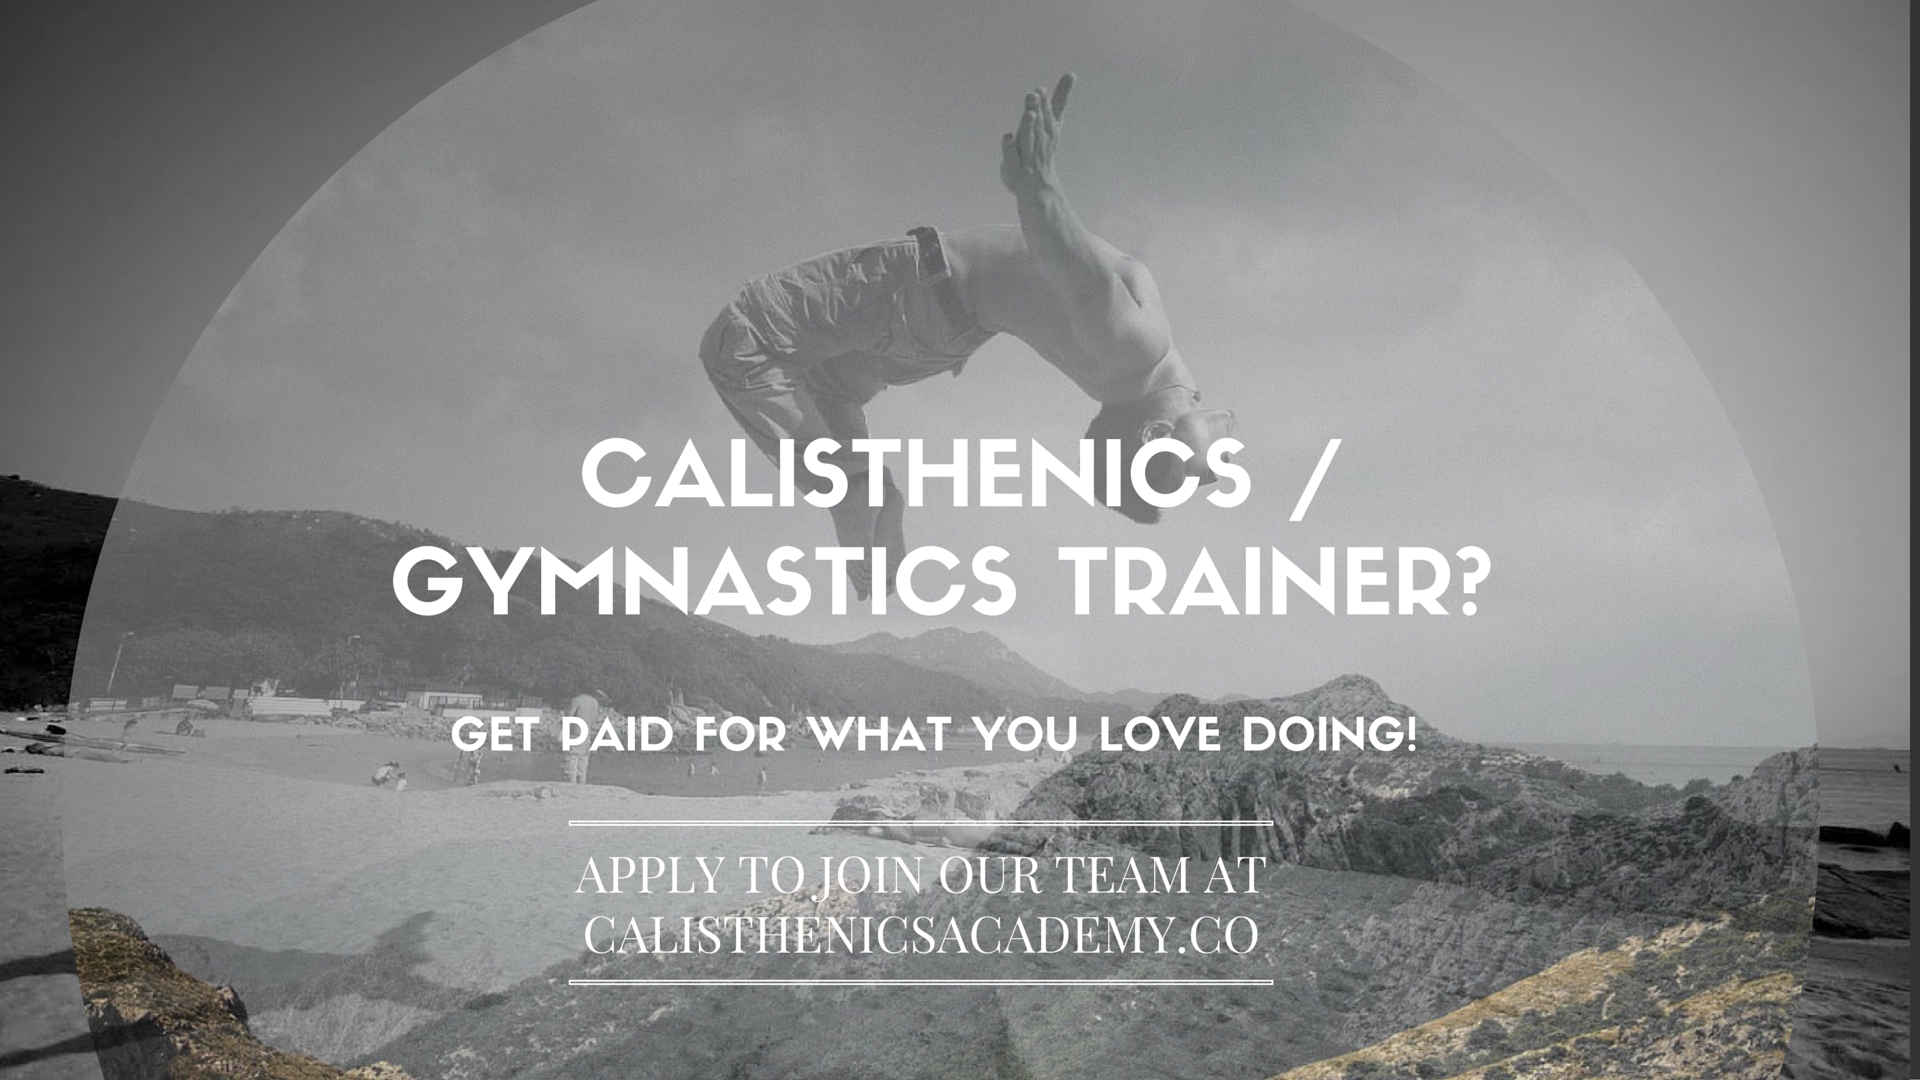 We Are Very Excited To Announce That Growing And Officially Looking For A Rock Star Trainer Join Our Online Calisthenics Academy Team